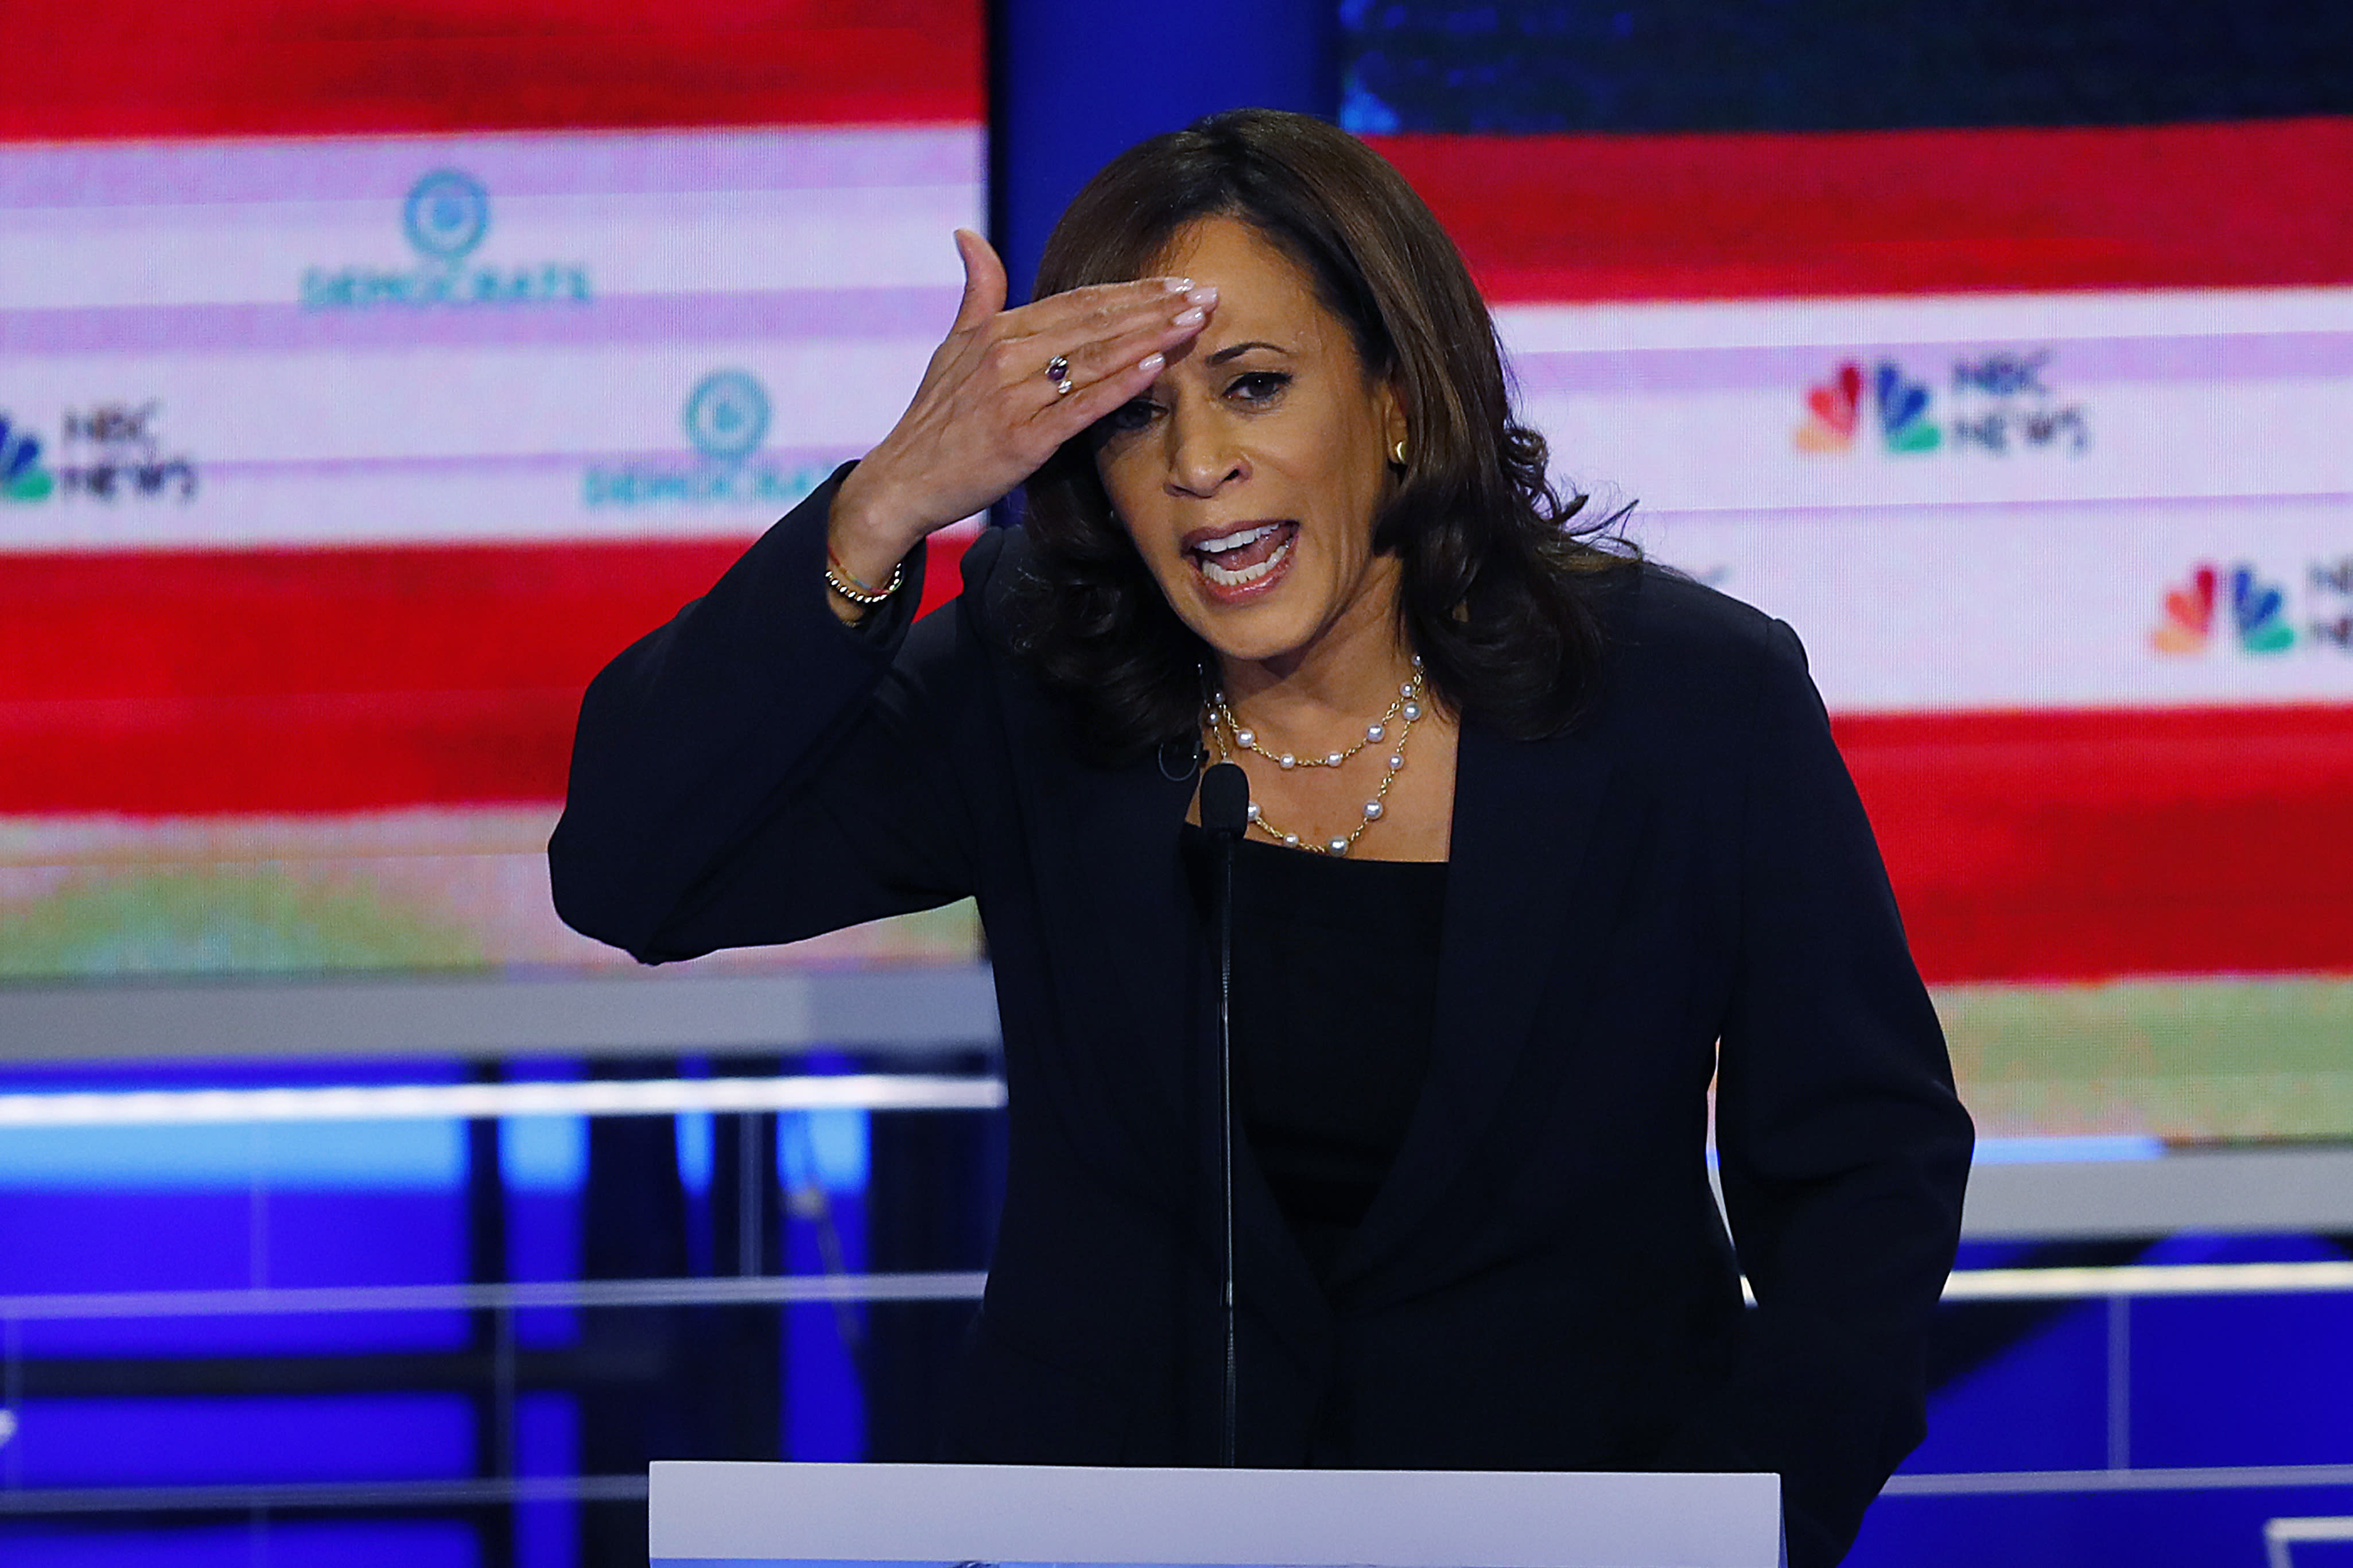 Harris now trailing just Biden, Sanders after Dem debates